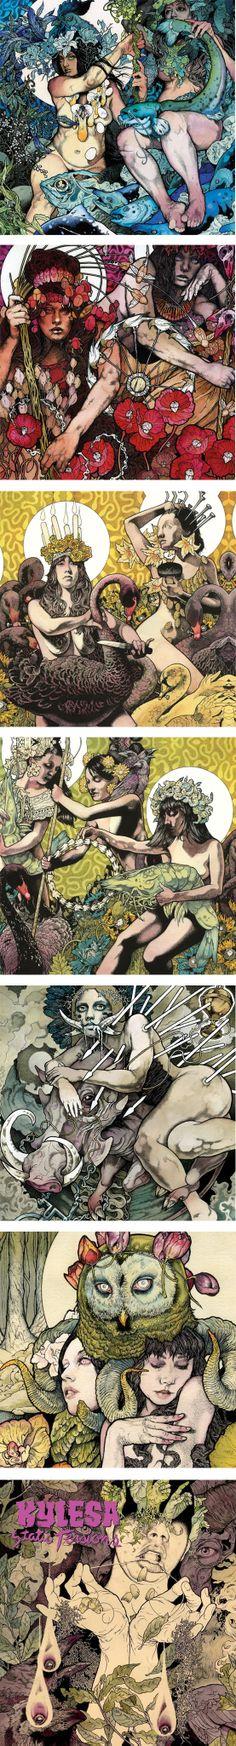 John  Dyer Baizle, Painter and Illustrator from the stoner band Baroness.